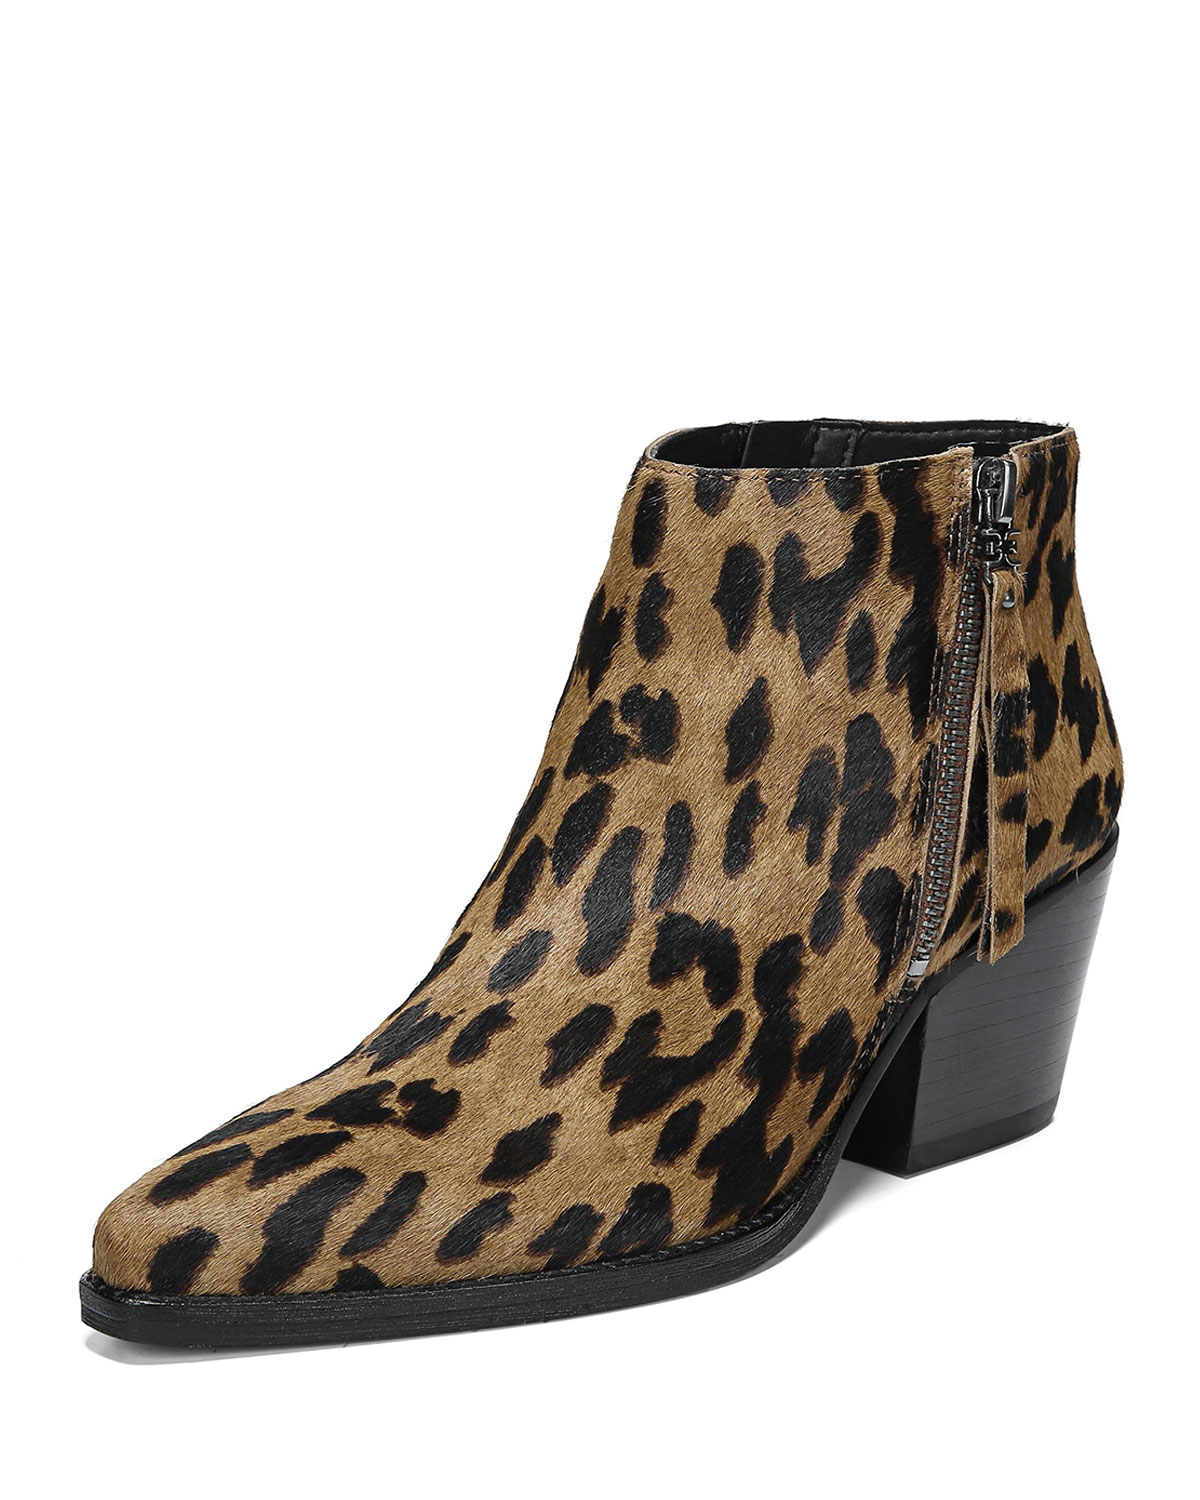 a1f1c8f2d Sam Edelman Walden 60mm Leopard Zip Booties